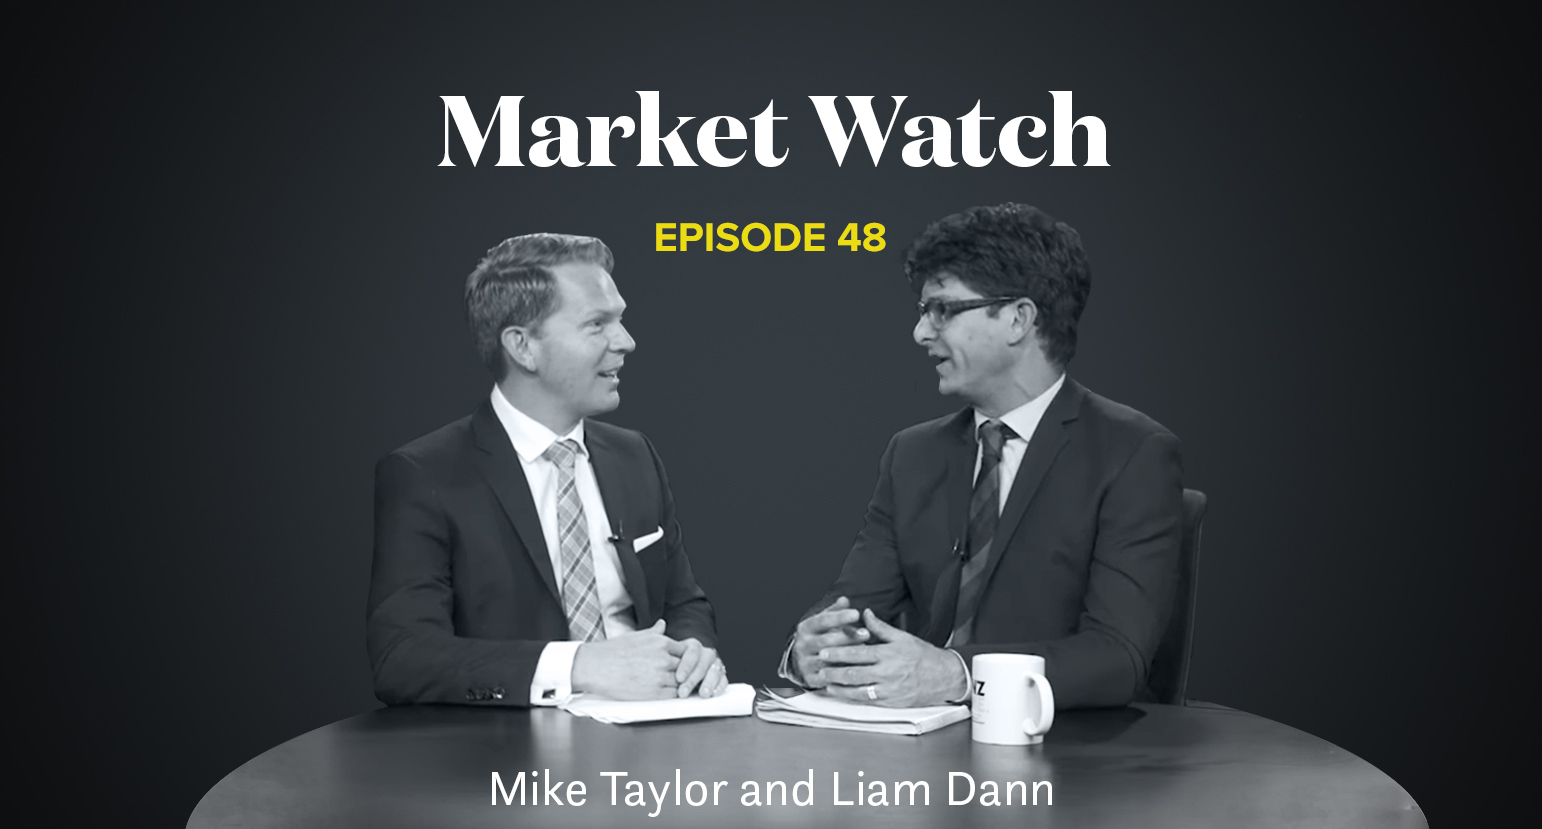 Market-Watch-Video-and-EP48.jpg